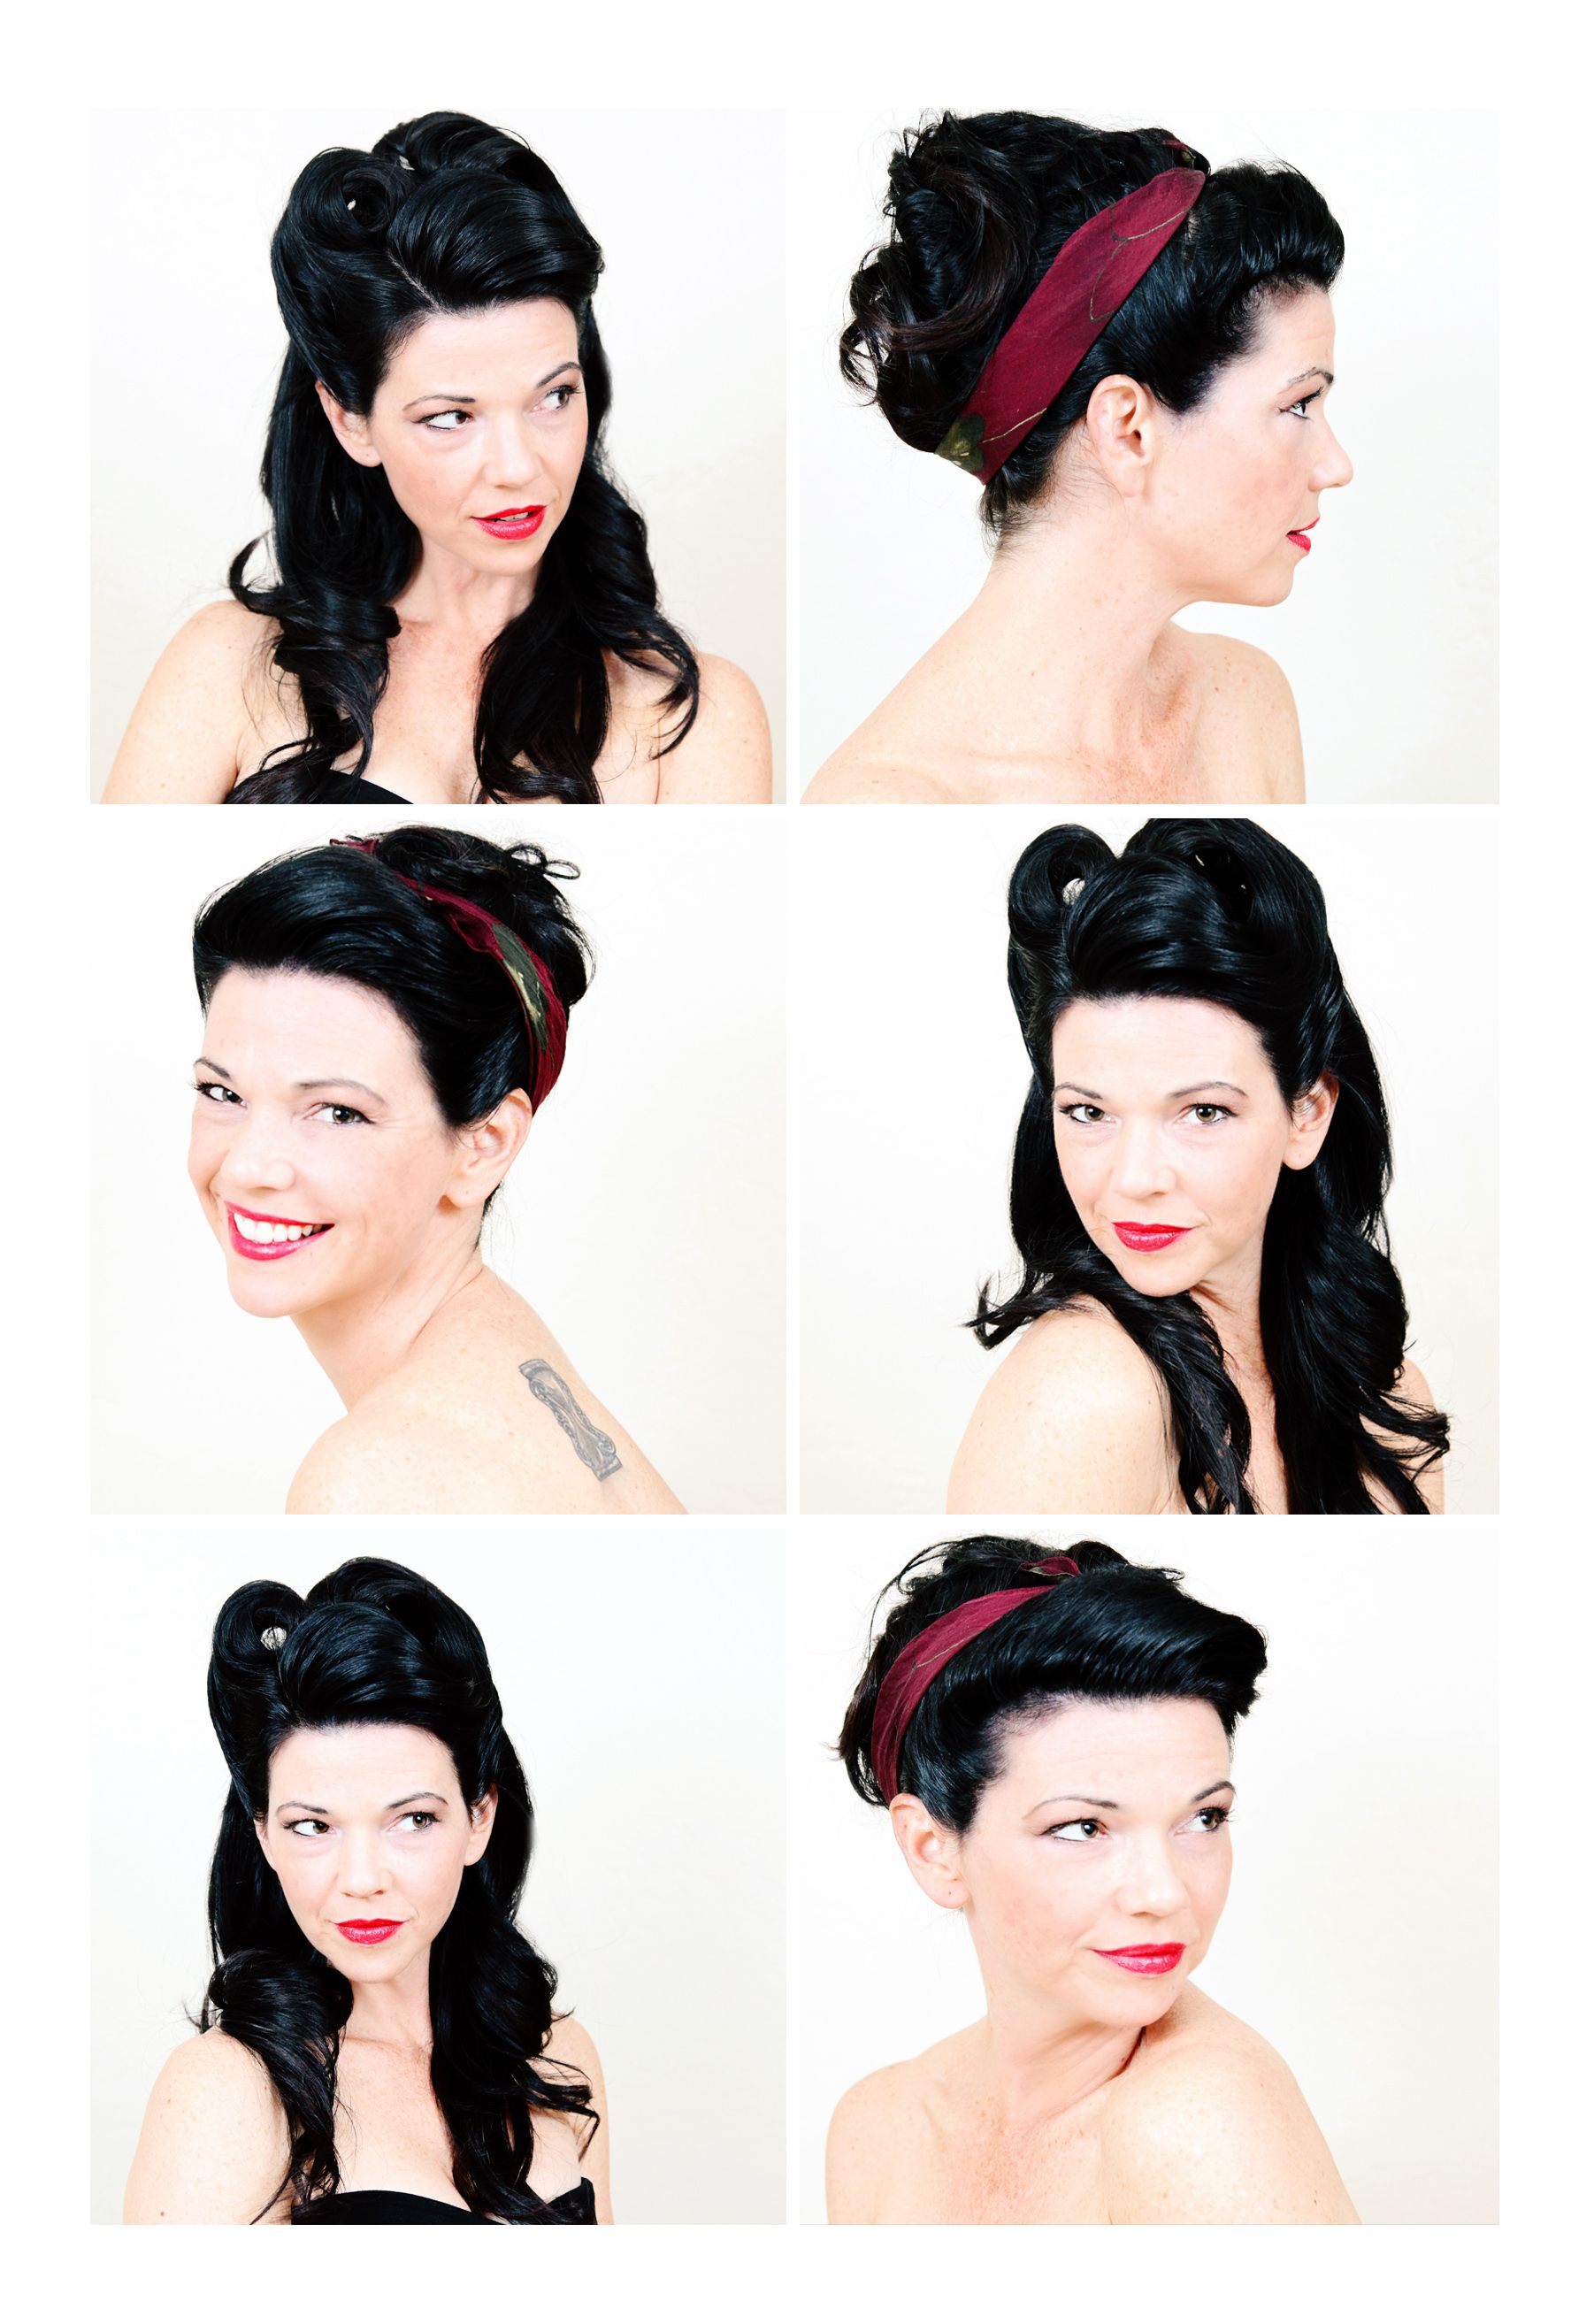 For s Womens Hairstyles s Pinterest